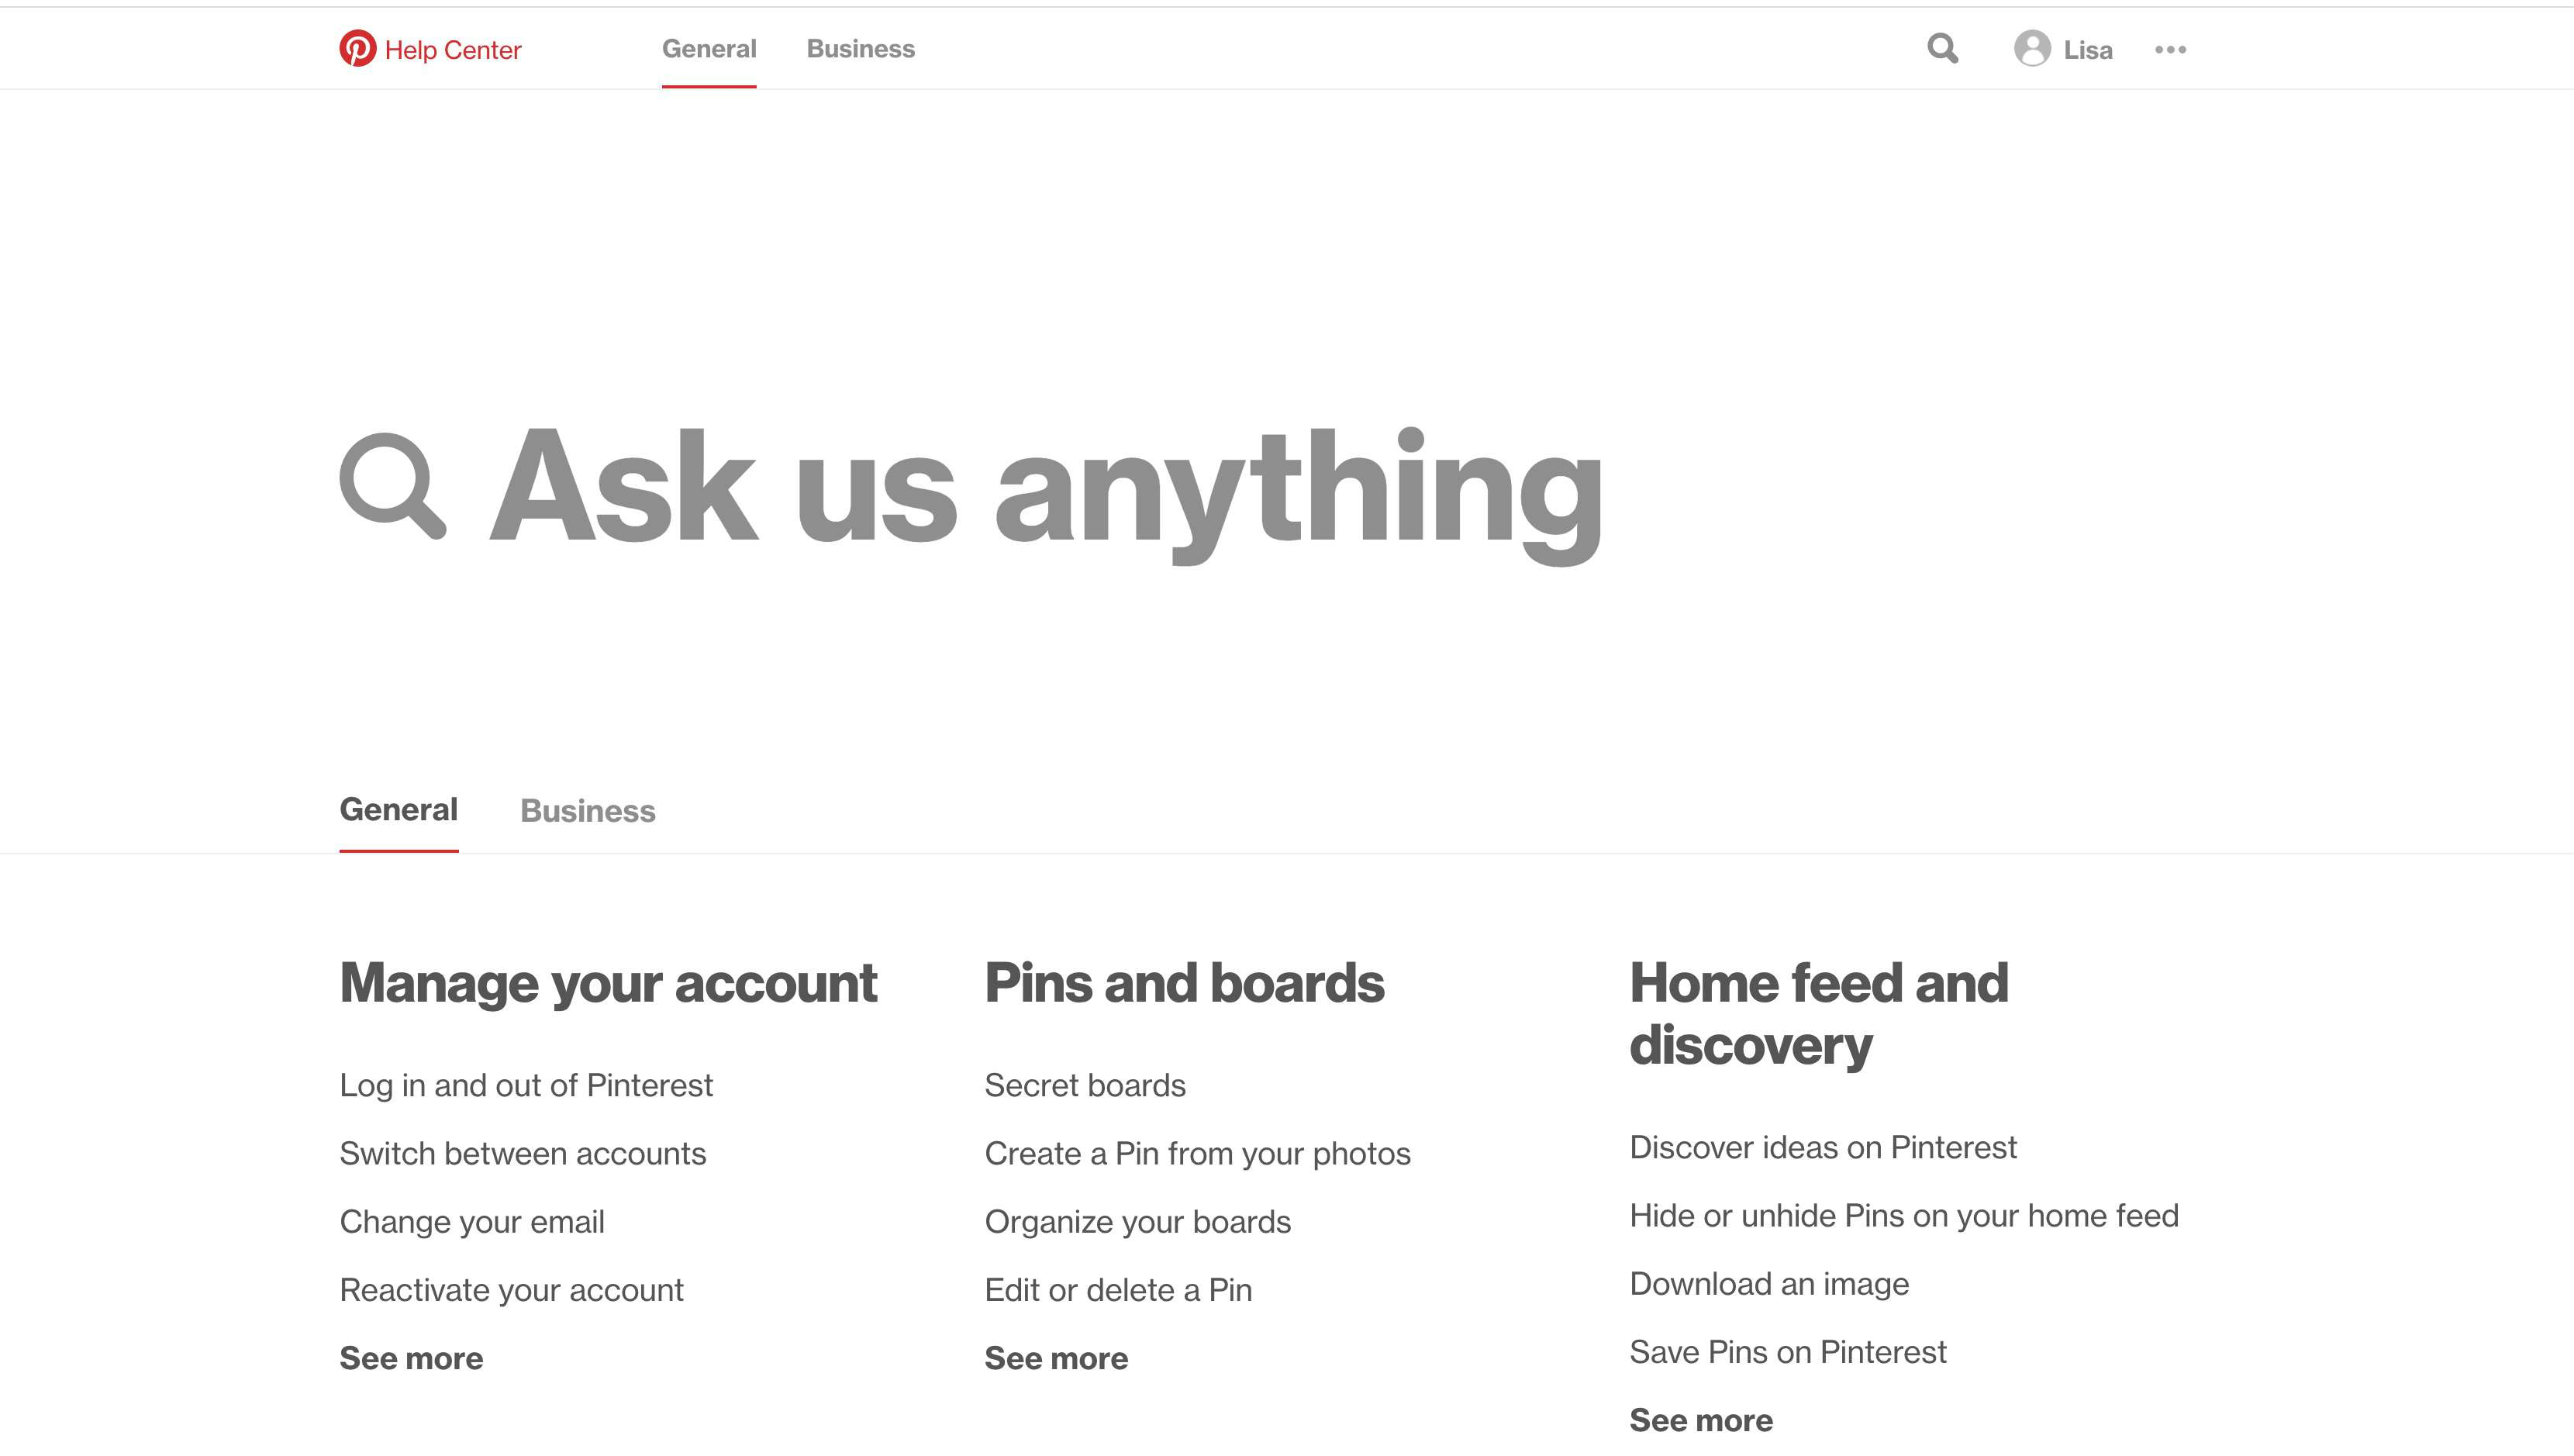 Select Get Help to bring up Pinterest's Help Center.